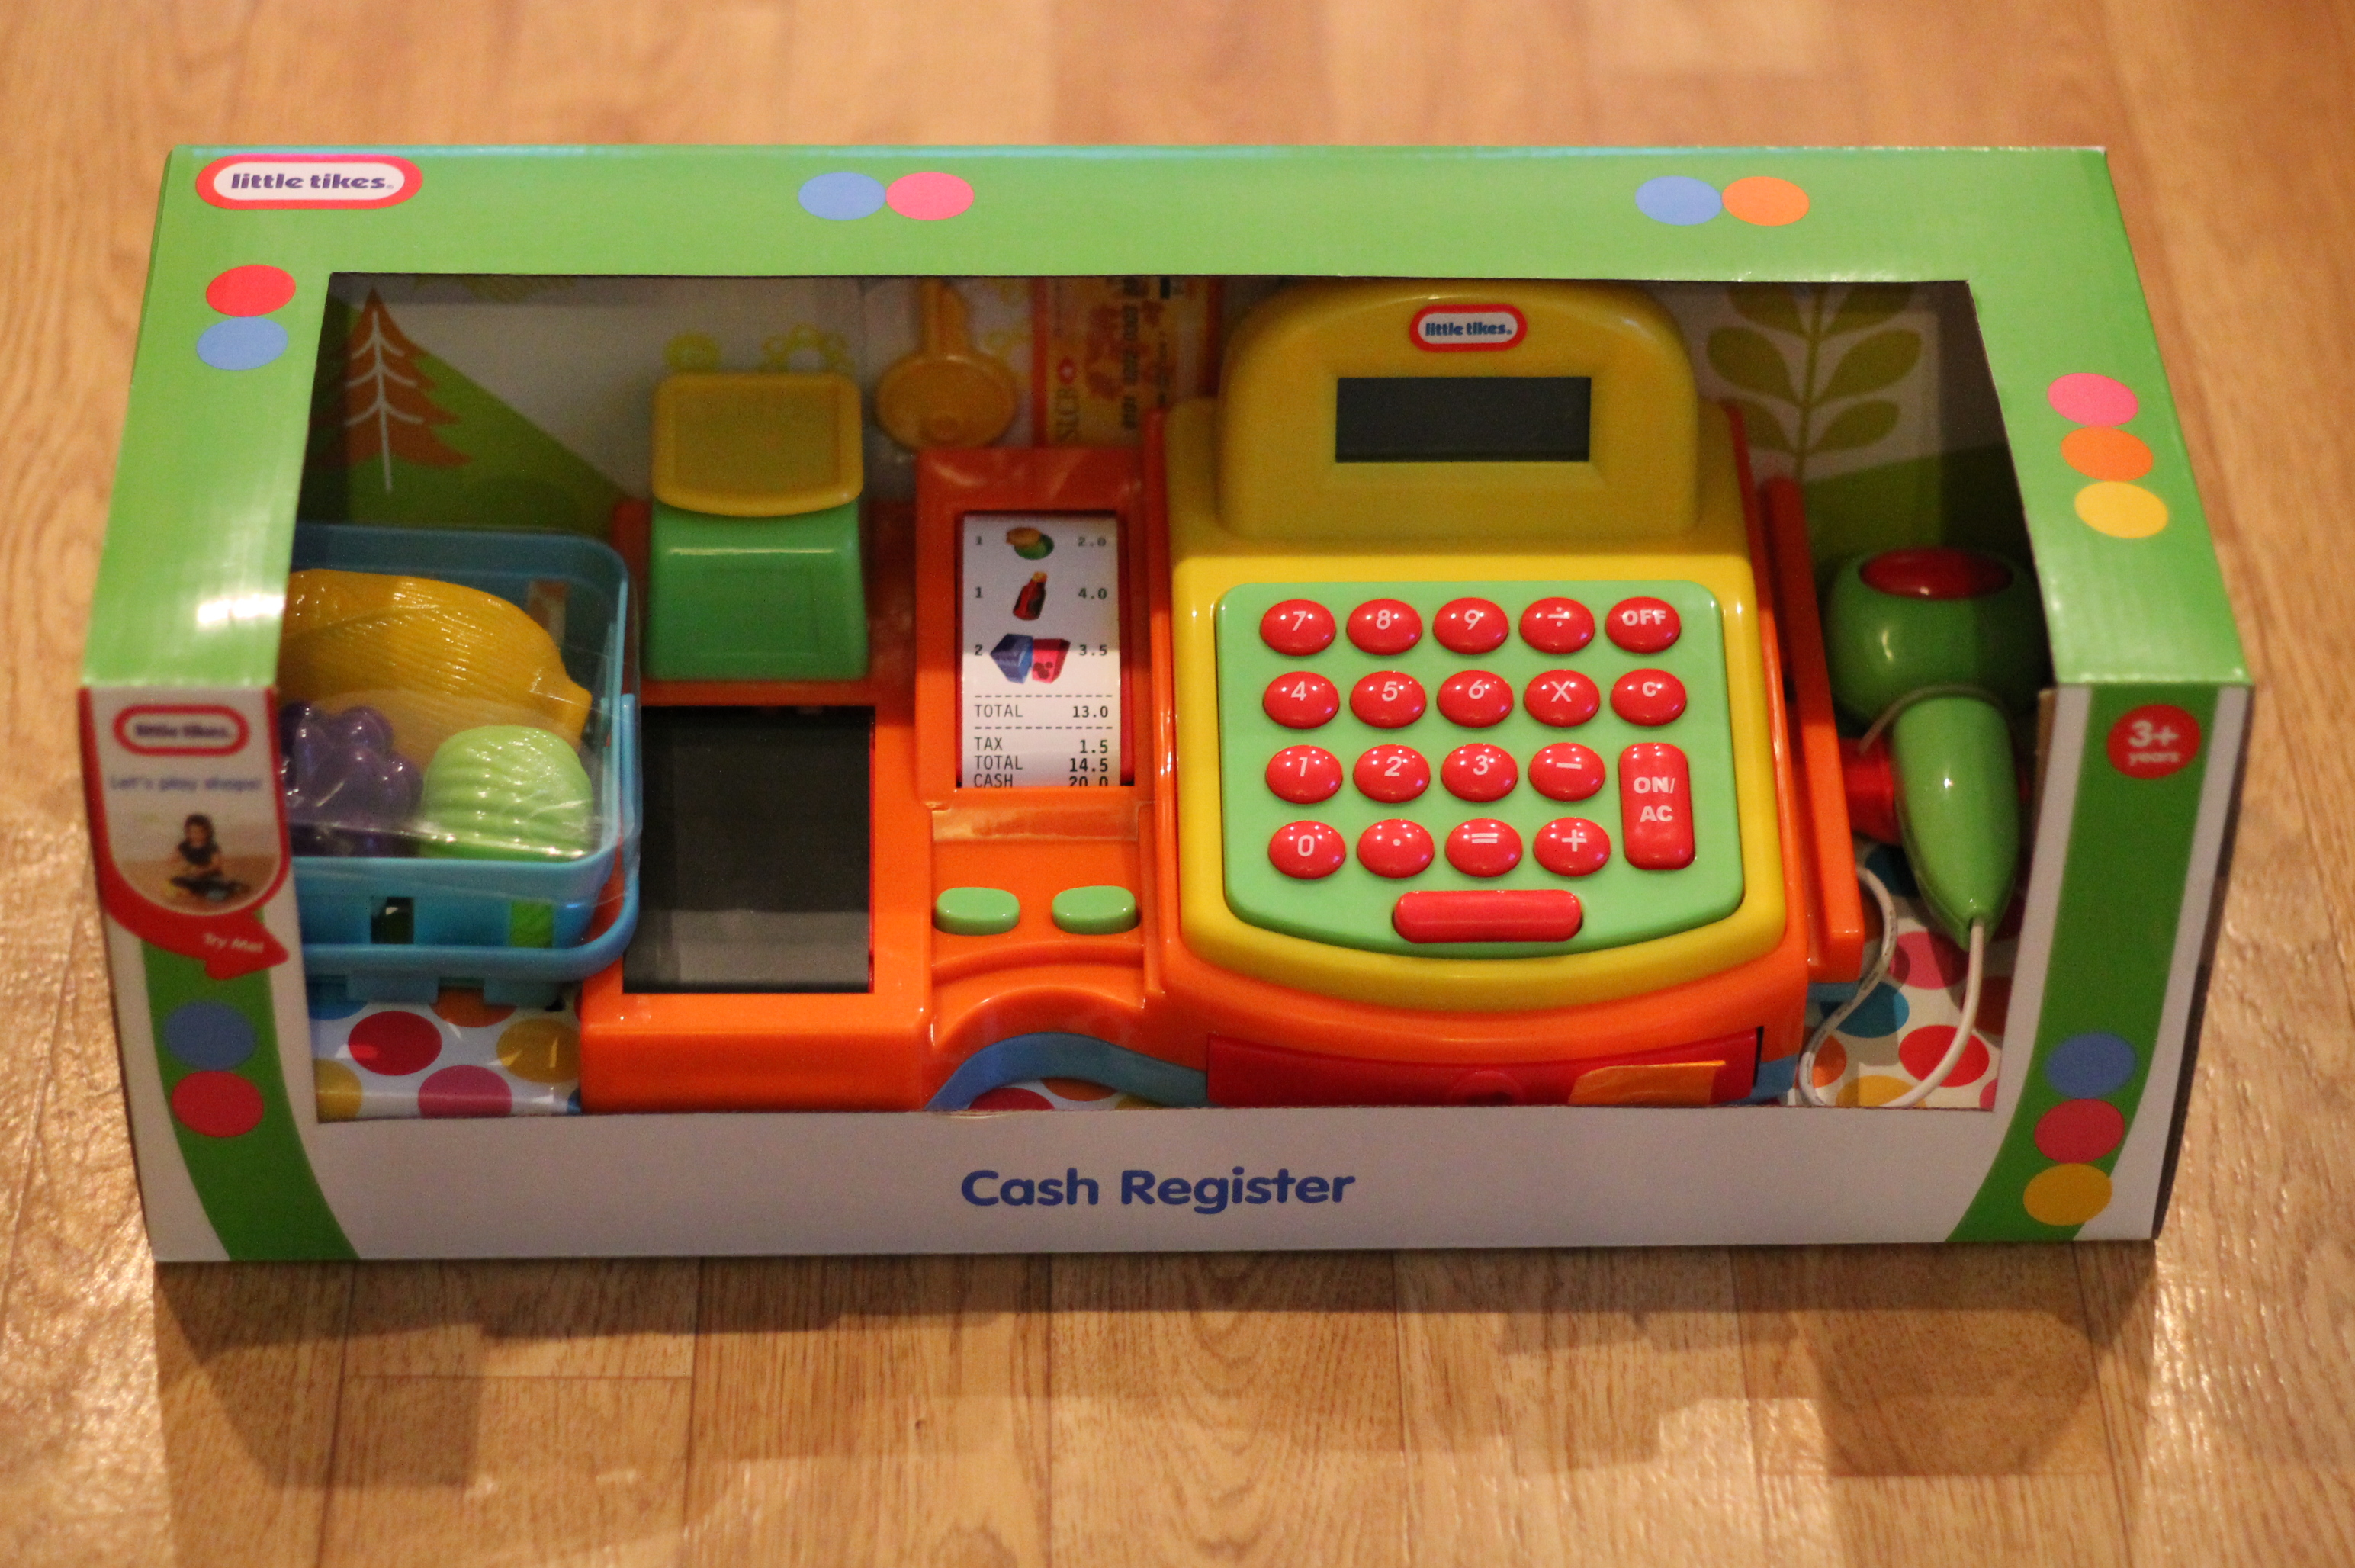 Little tikes cash register - The Little Tikes Cash Register Has So Many Accessories With It A Basket Of Play Food Play Money A Key And A Credit Card